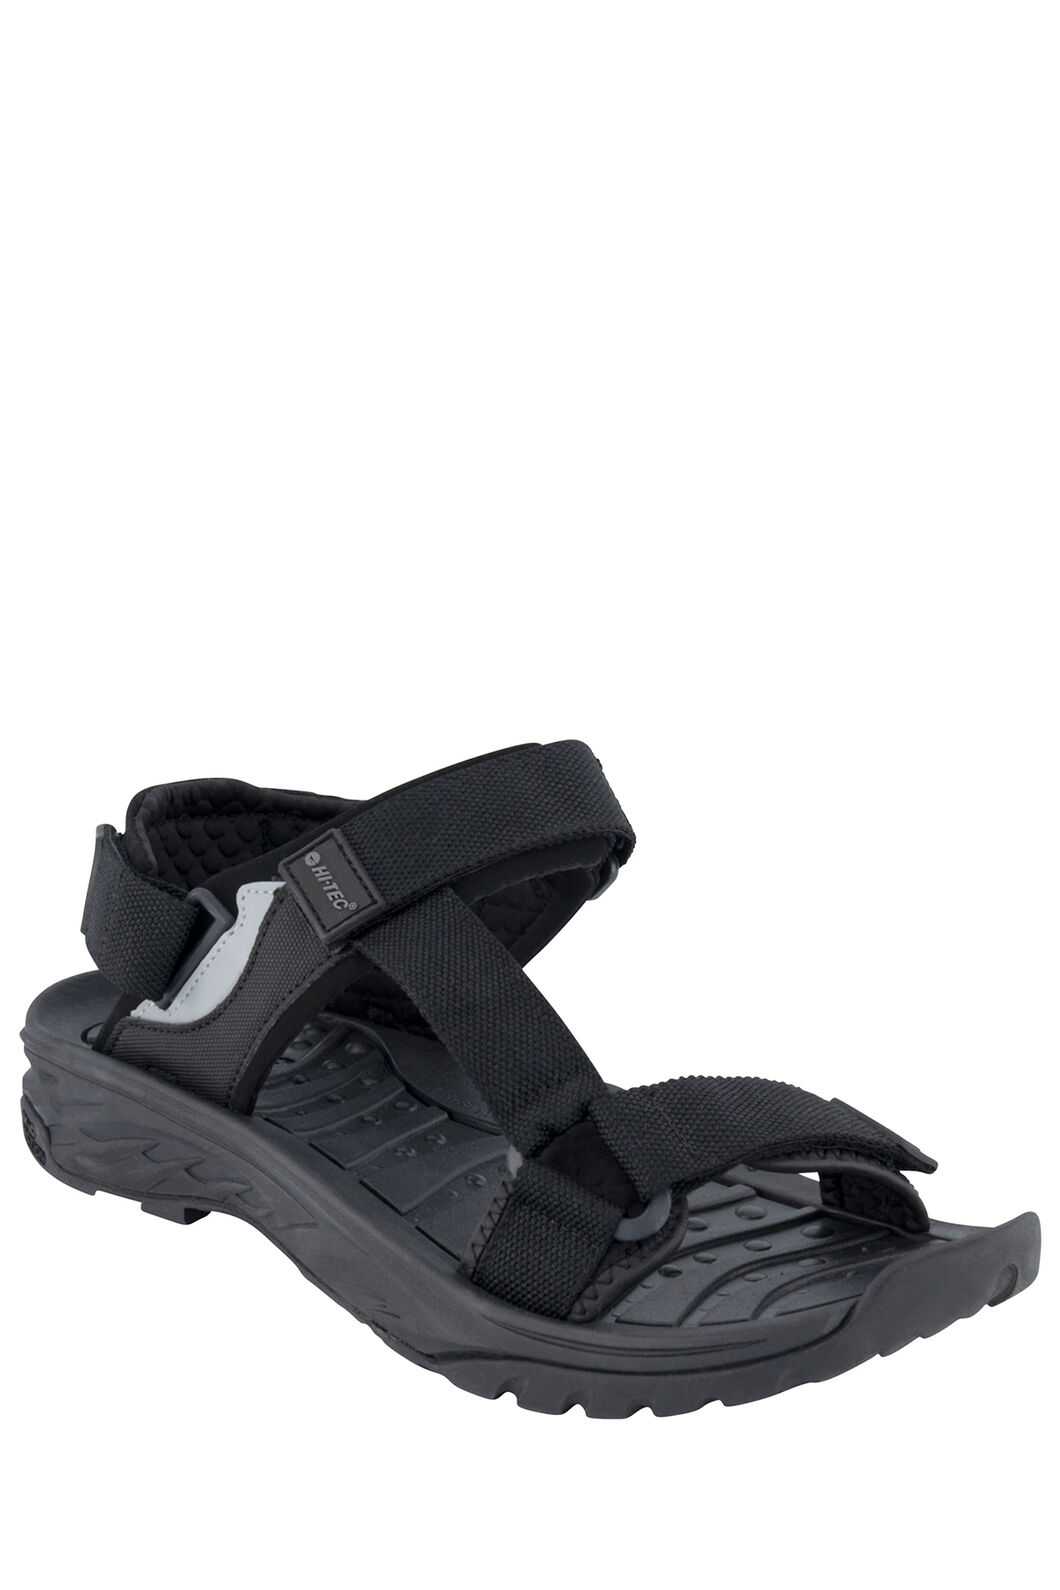 Hi-Tec Ula Raft Sandals Men's, Black, hi-res